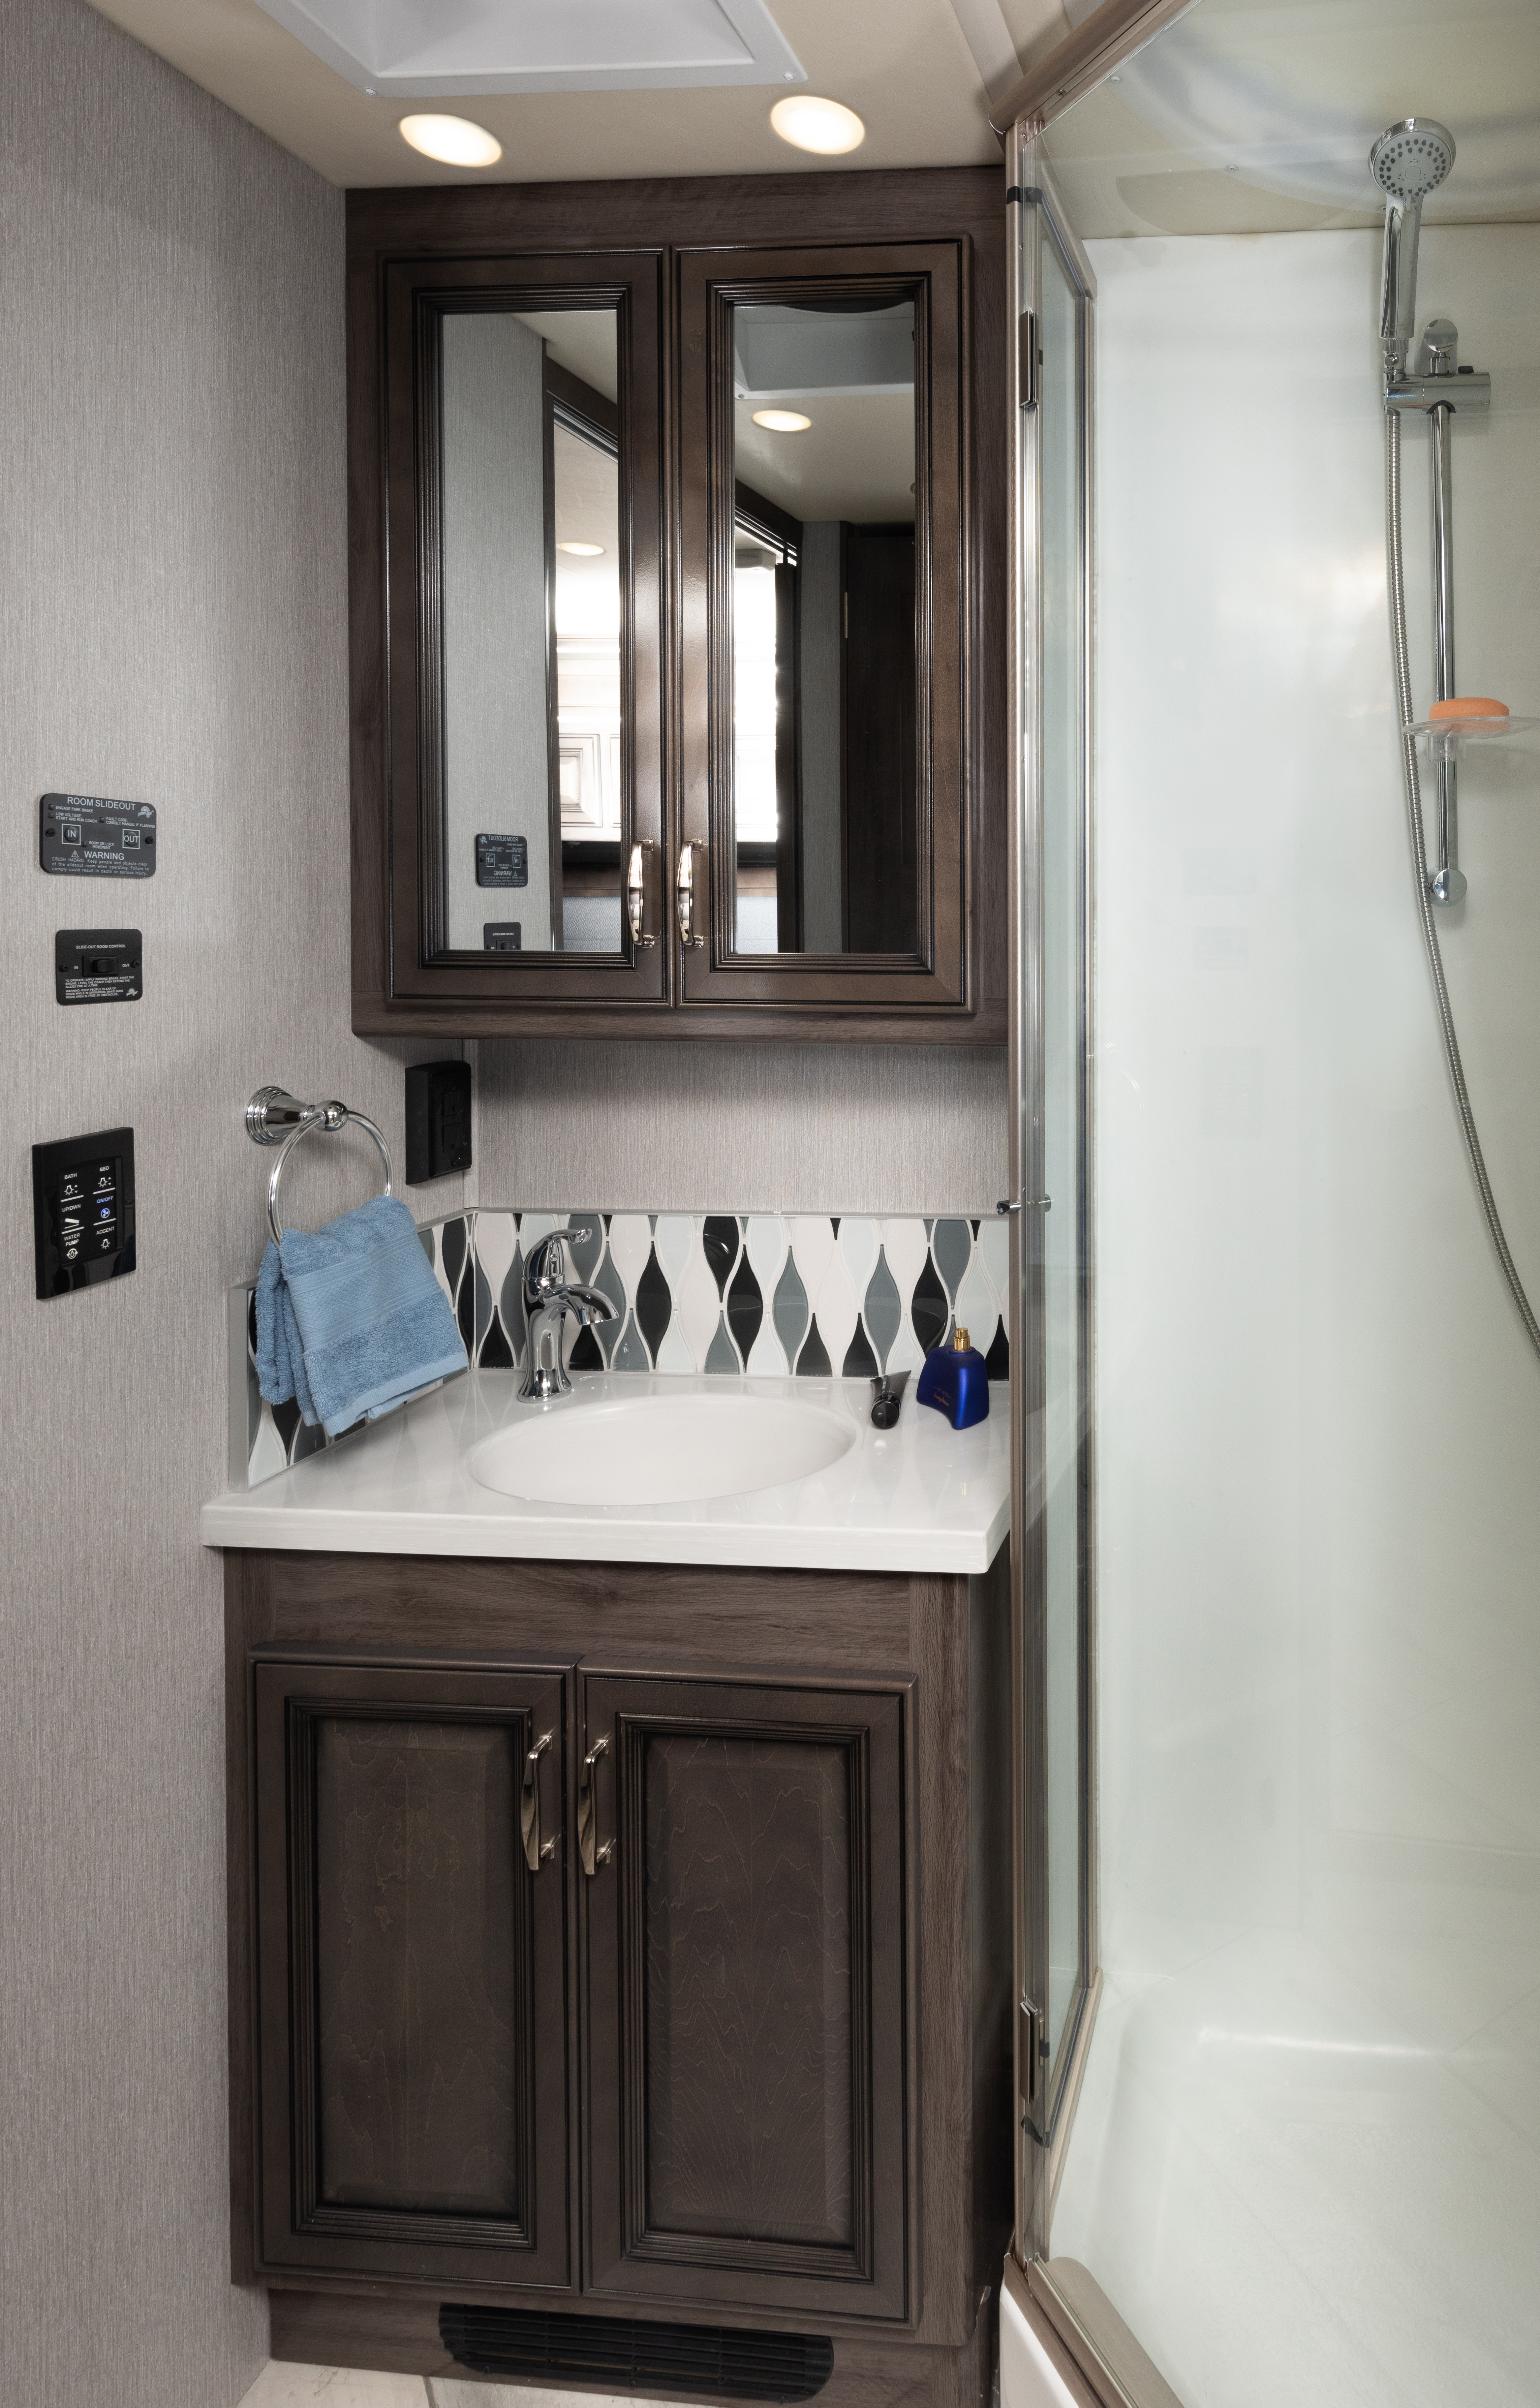 Discovery 36Q Enclave Decor with Greystone Cabinetry